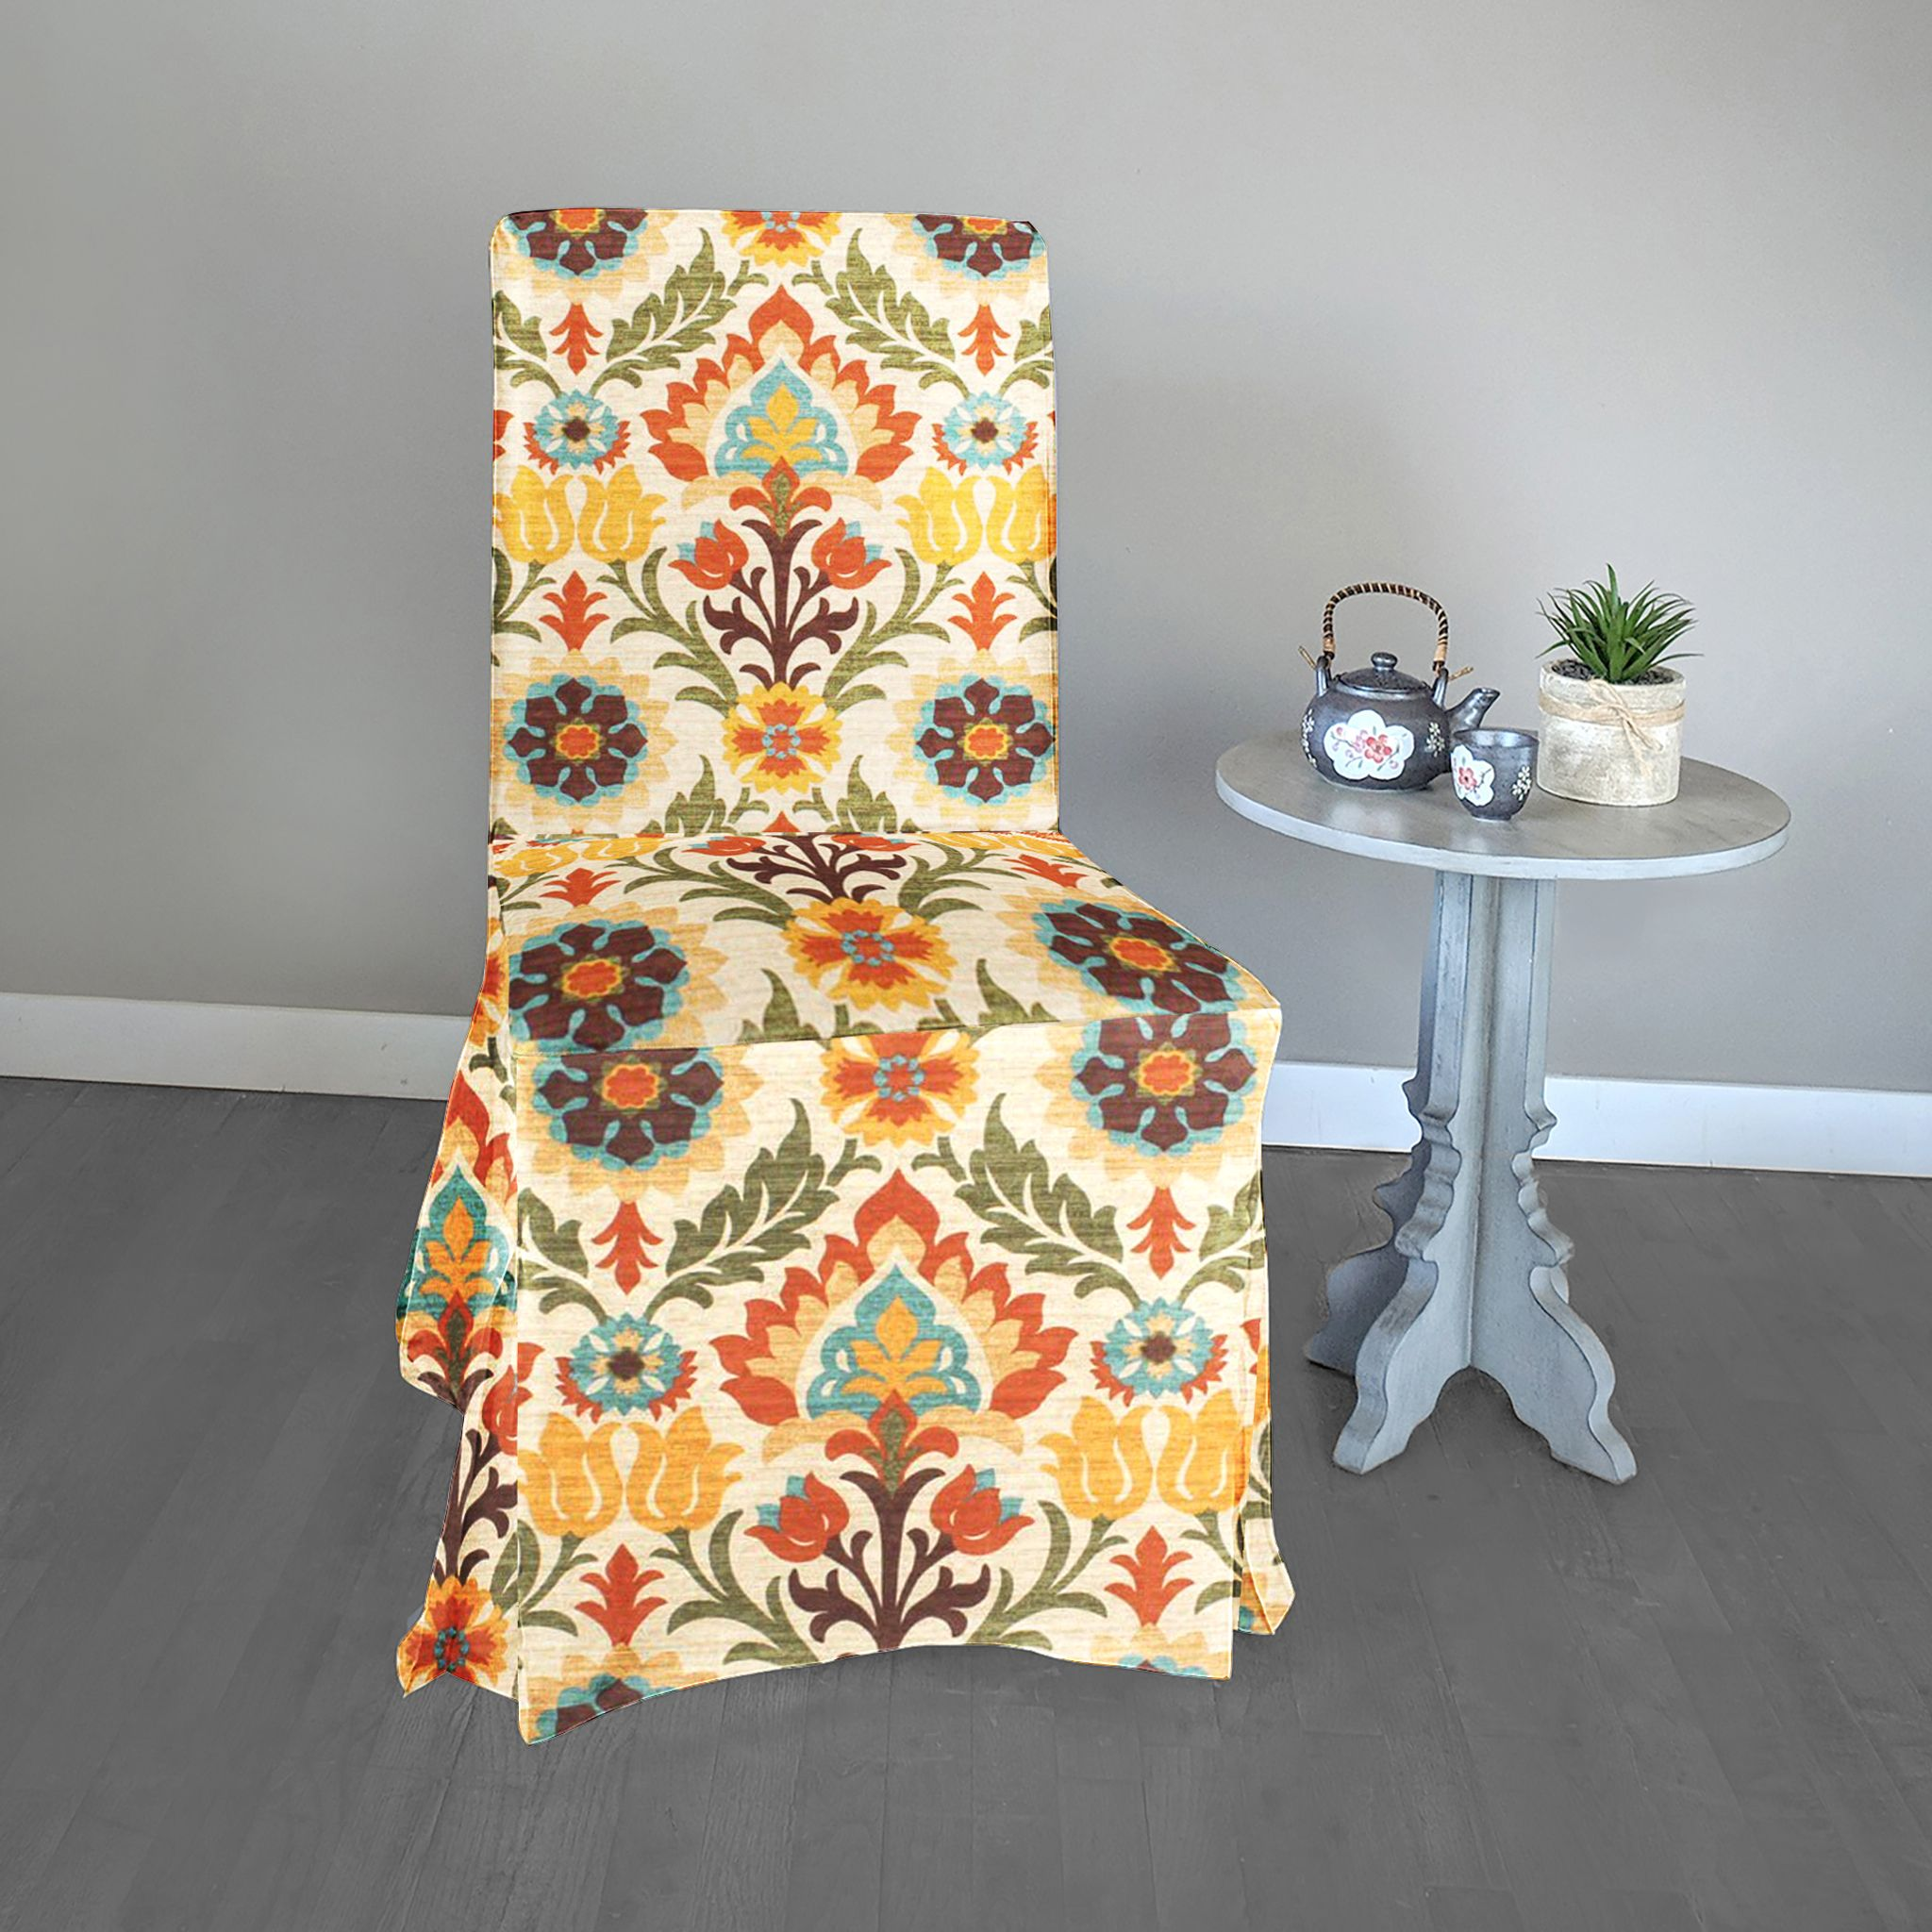 IKEA HENRIKSDAL Chair Cover, Santa Maria Adobe